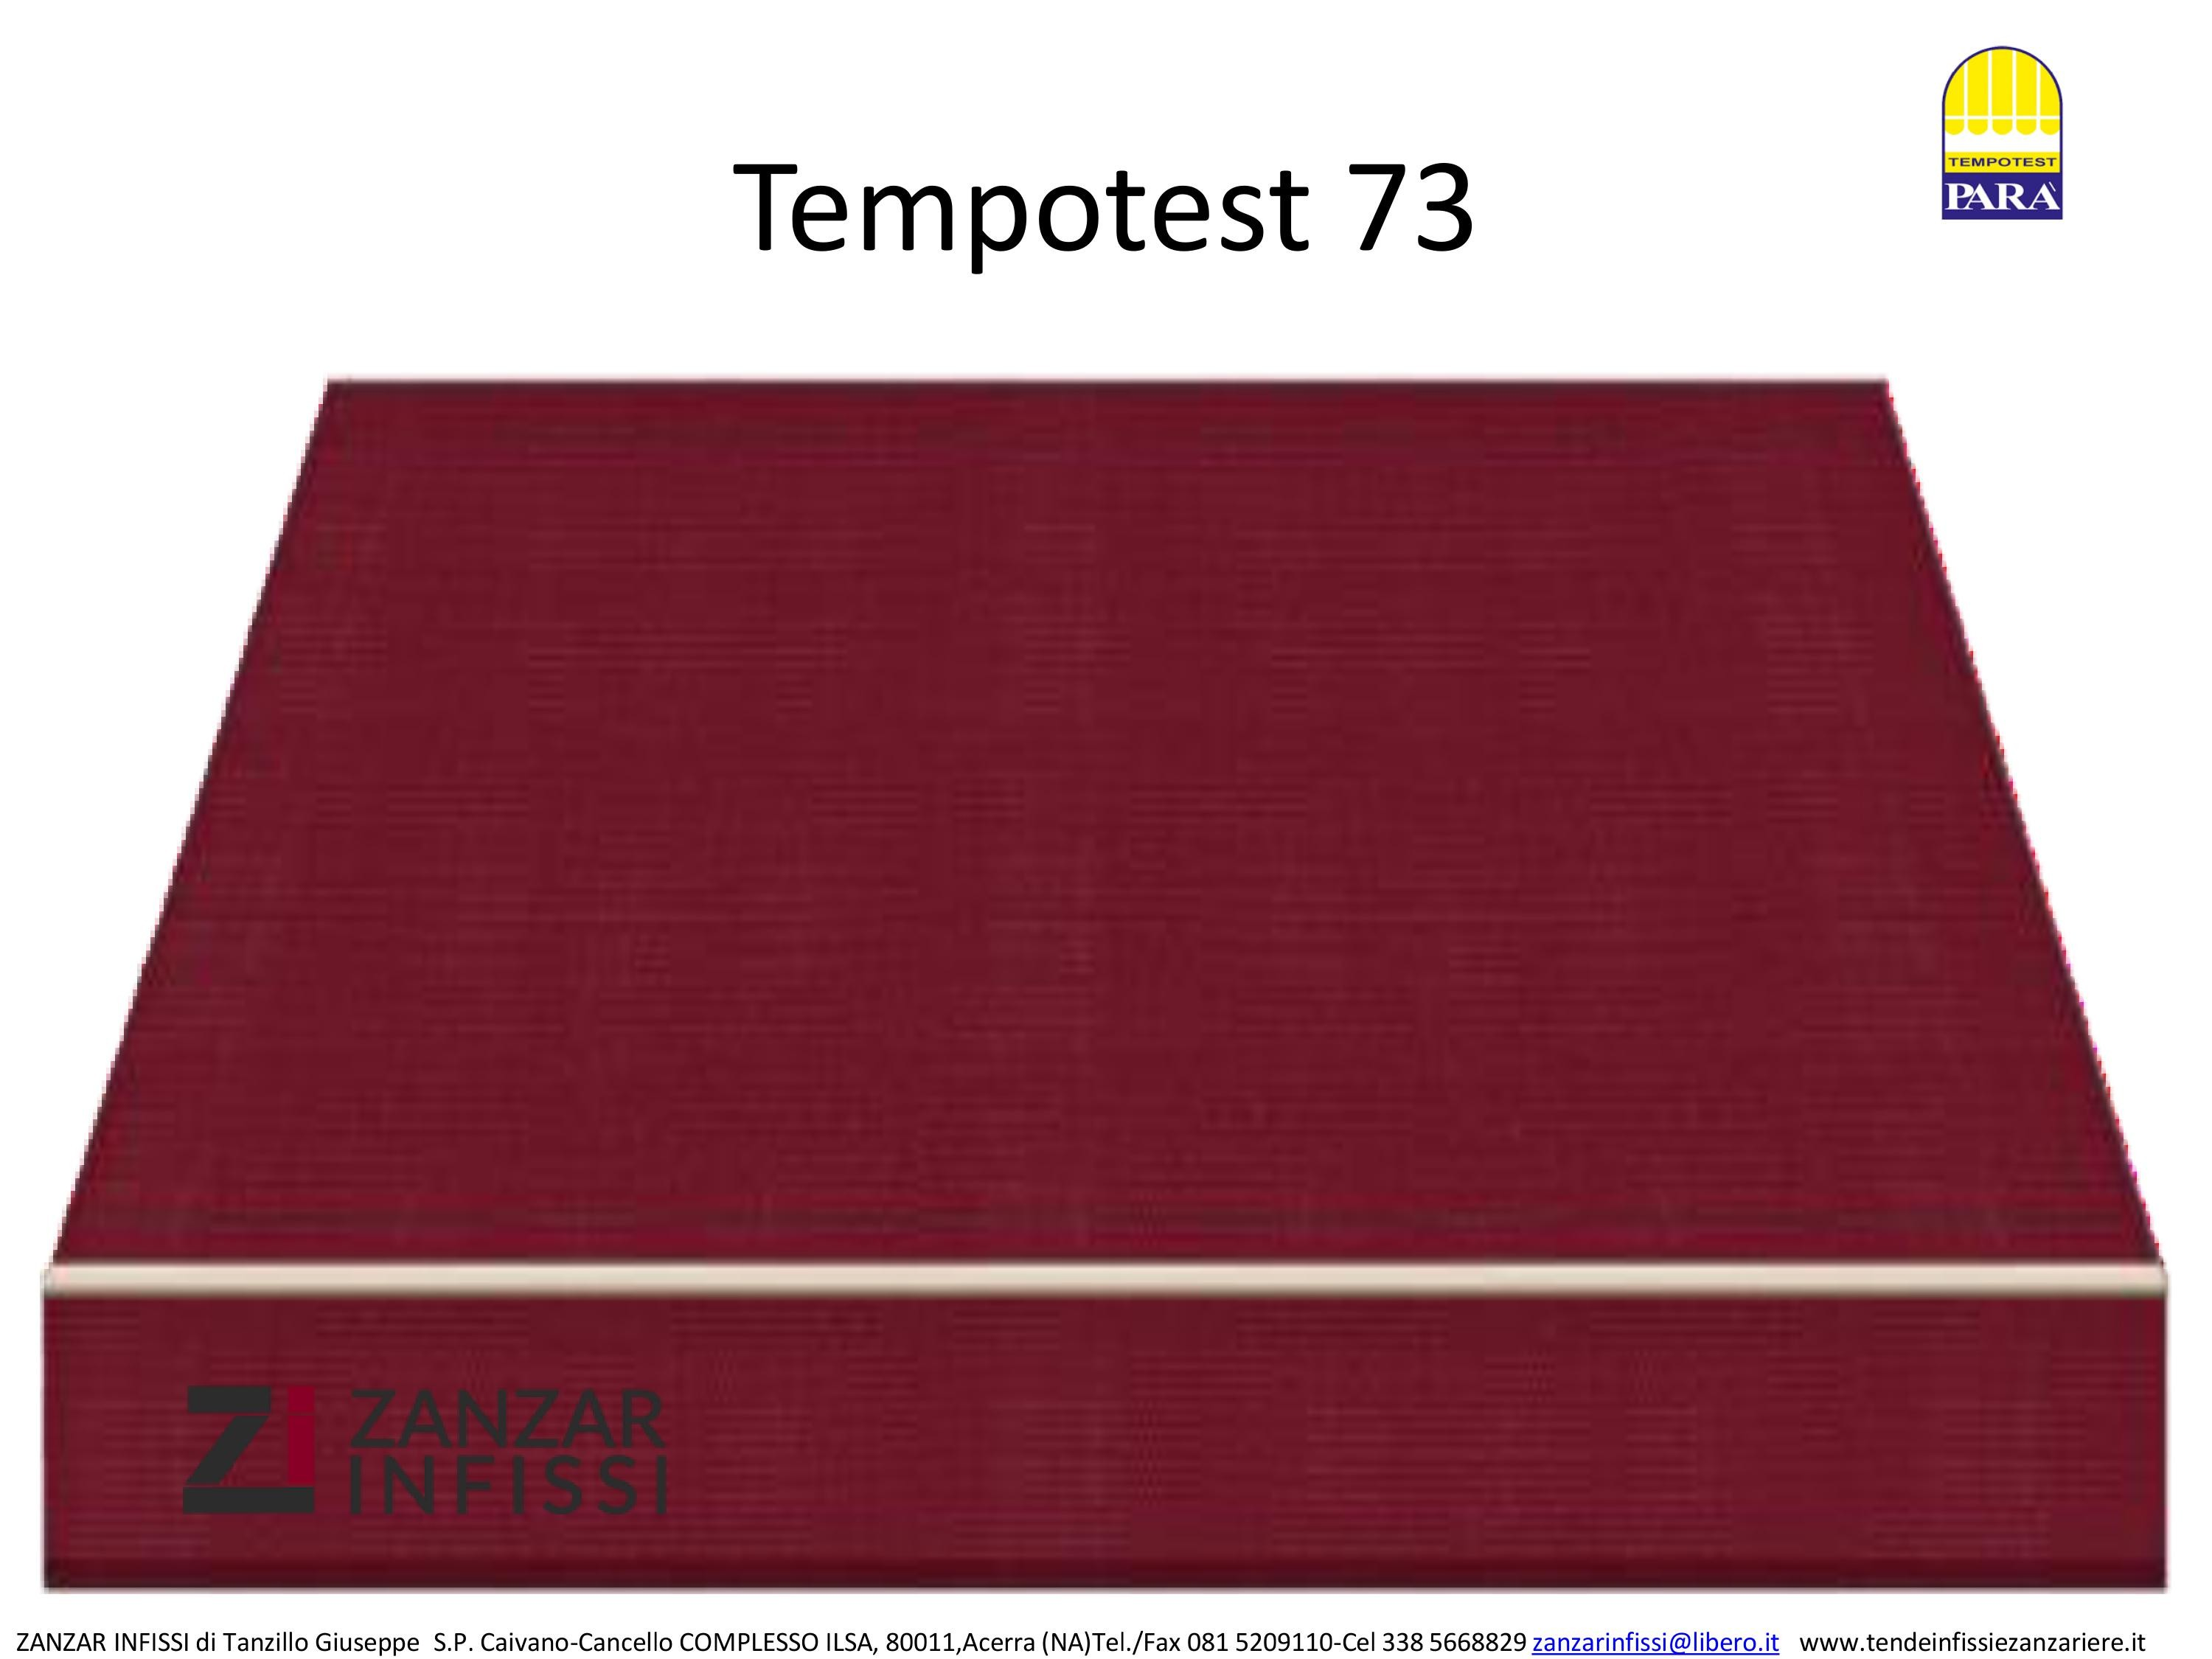 Tempotest 73